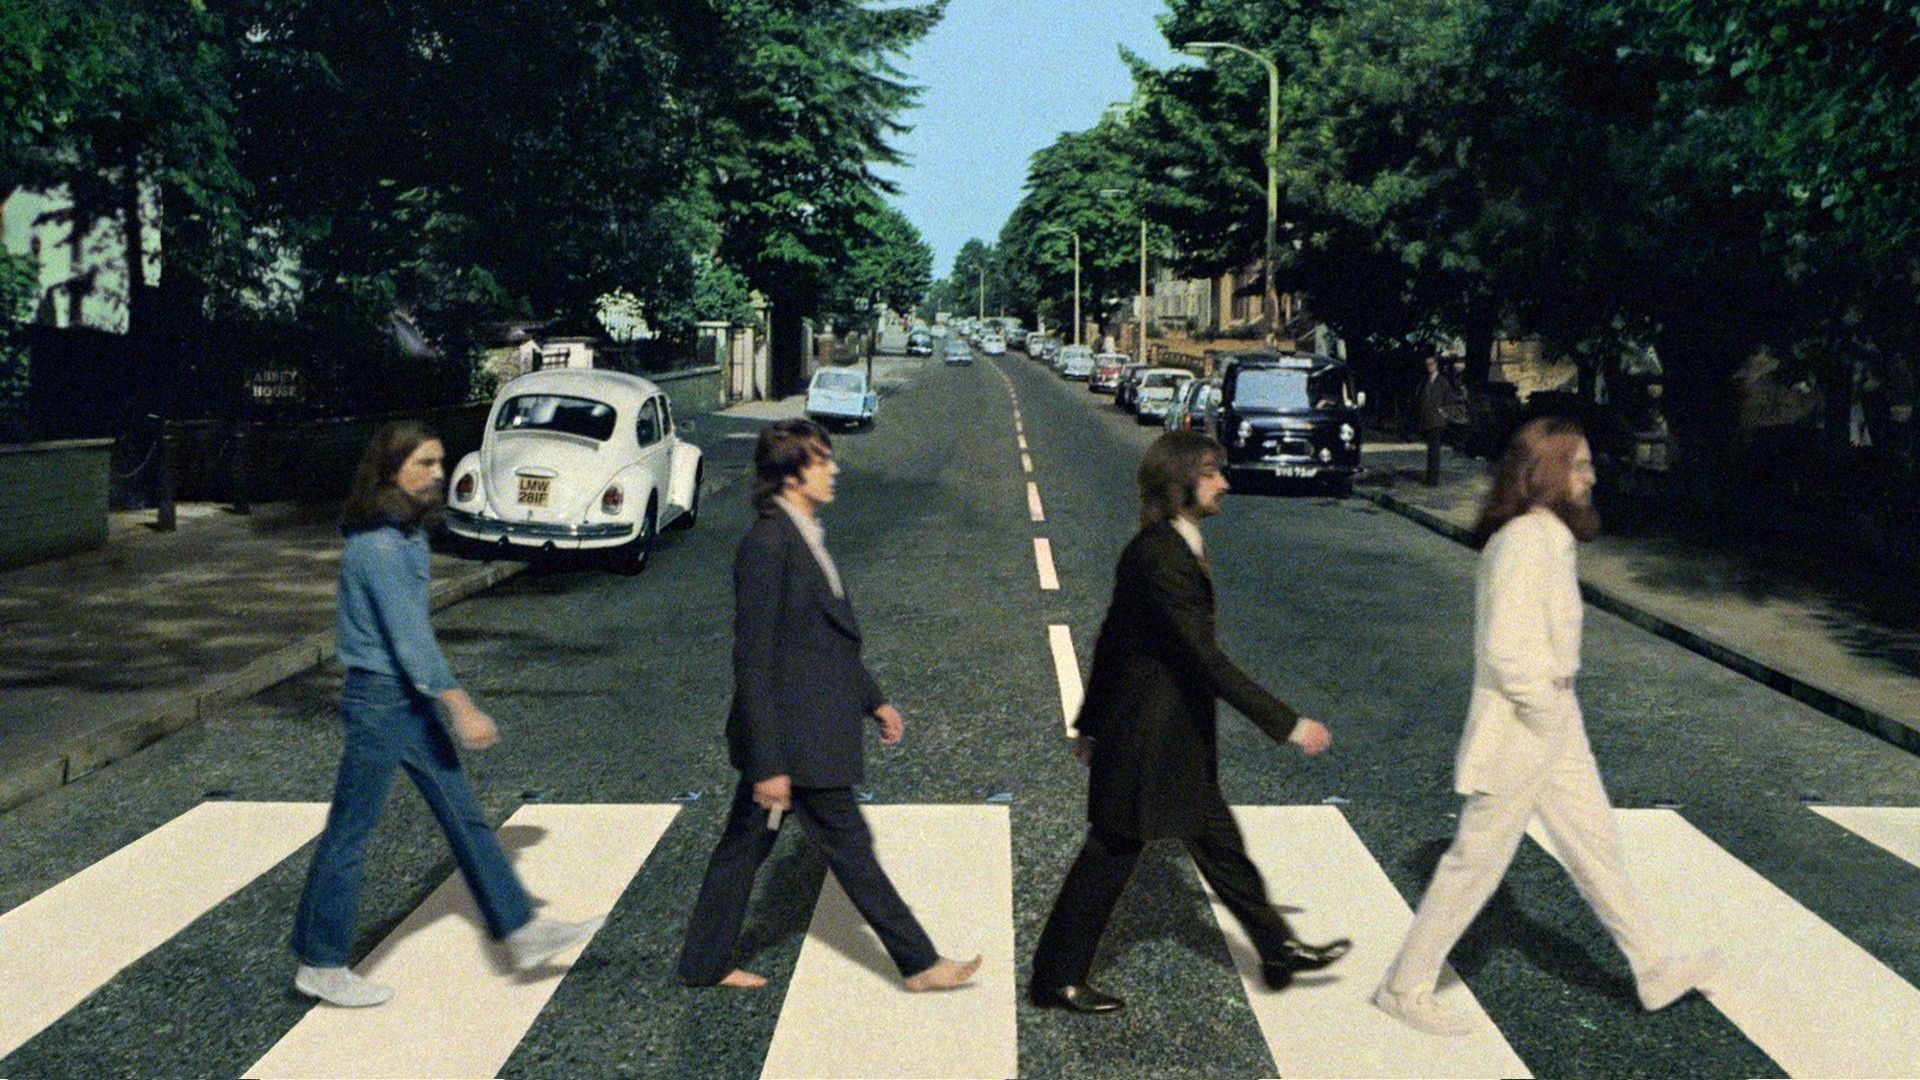 1920x1080 The Beatles Wallpapers HD 36